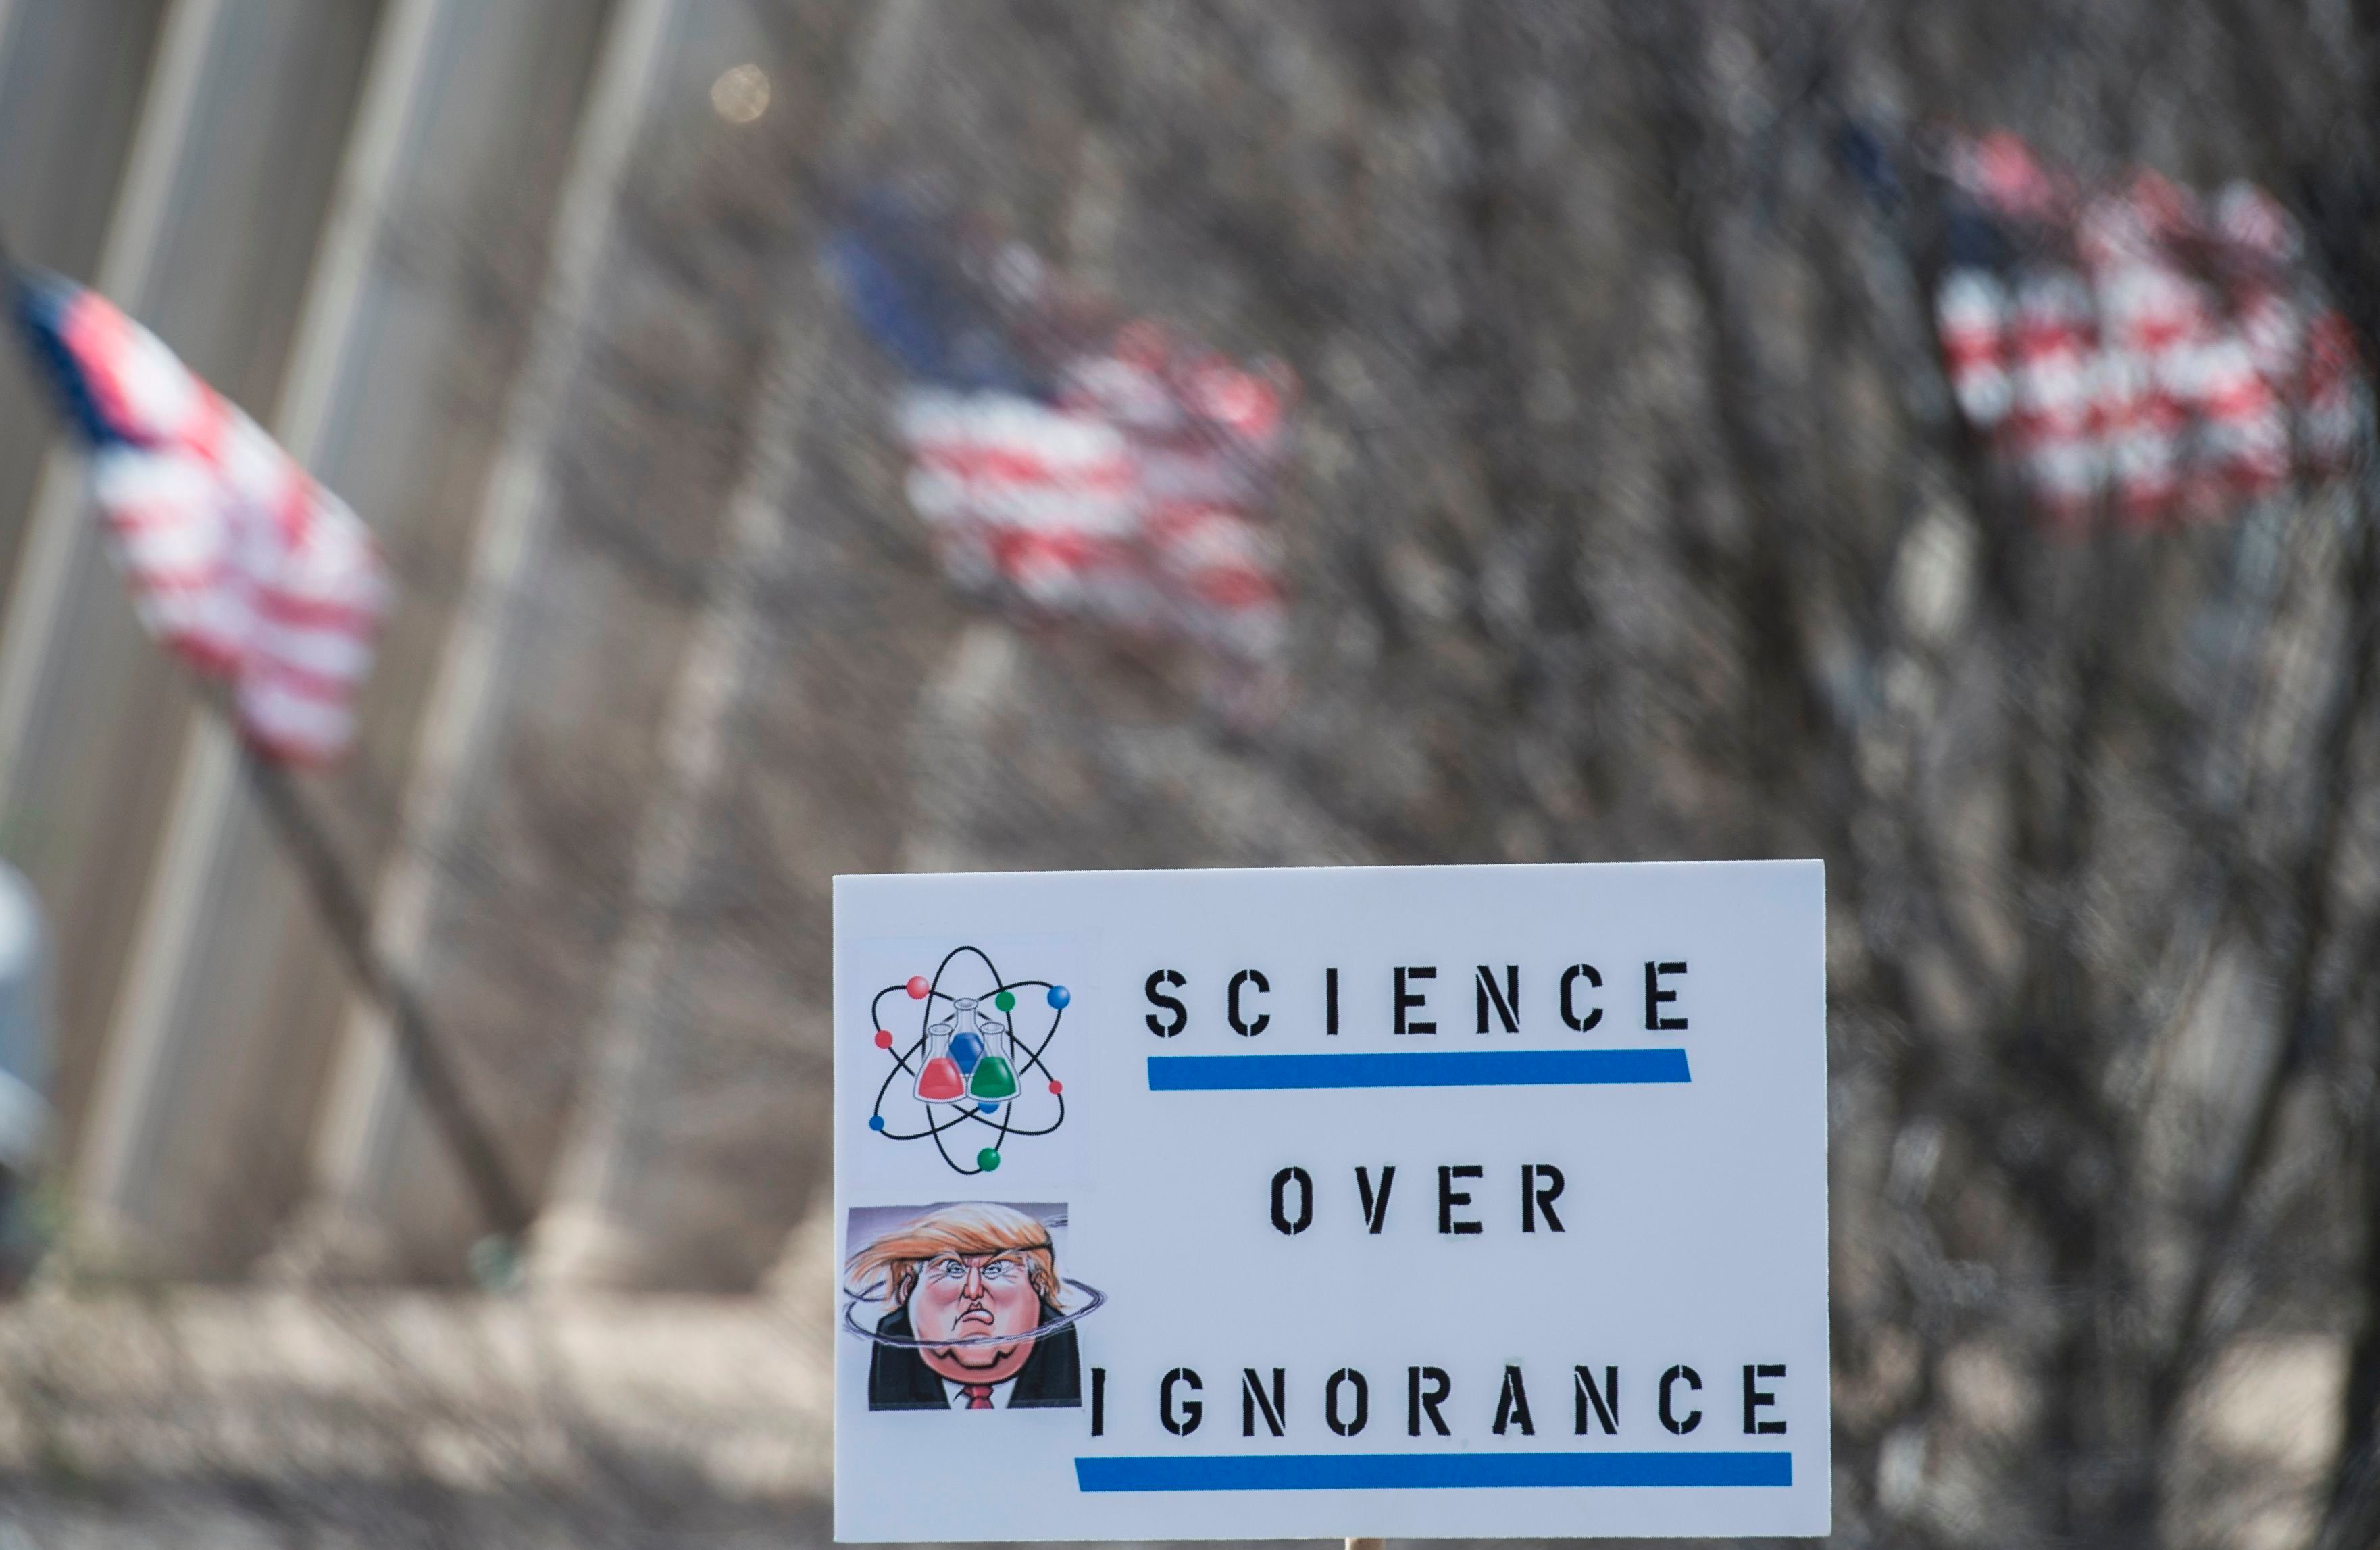 Demonstrators take part in the March for Science in Washington, DC on April 14, 2018. Local scientists and supporters joined a global March for Science to fight back against what many see as an 'assault on facts' by populist politicians.     / AFP PHOTO / Andrew CABALLERO-REYNOLDS        (Photo credit should read ANDREW CABALLERO-REYNOLDS/AFP/Getty Images)